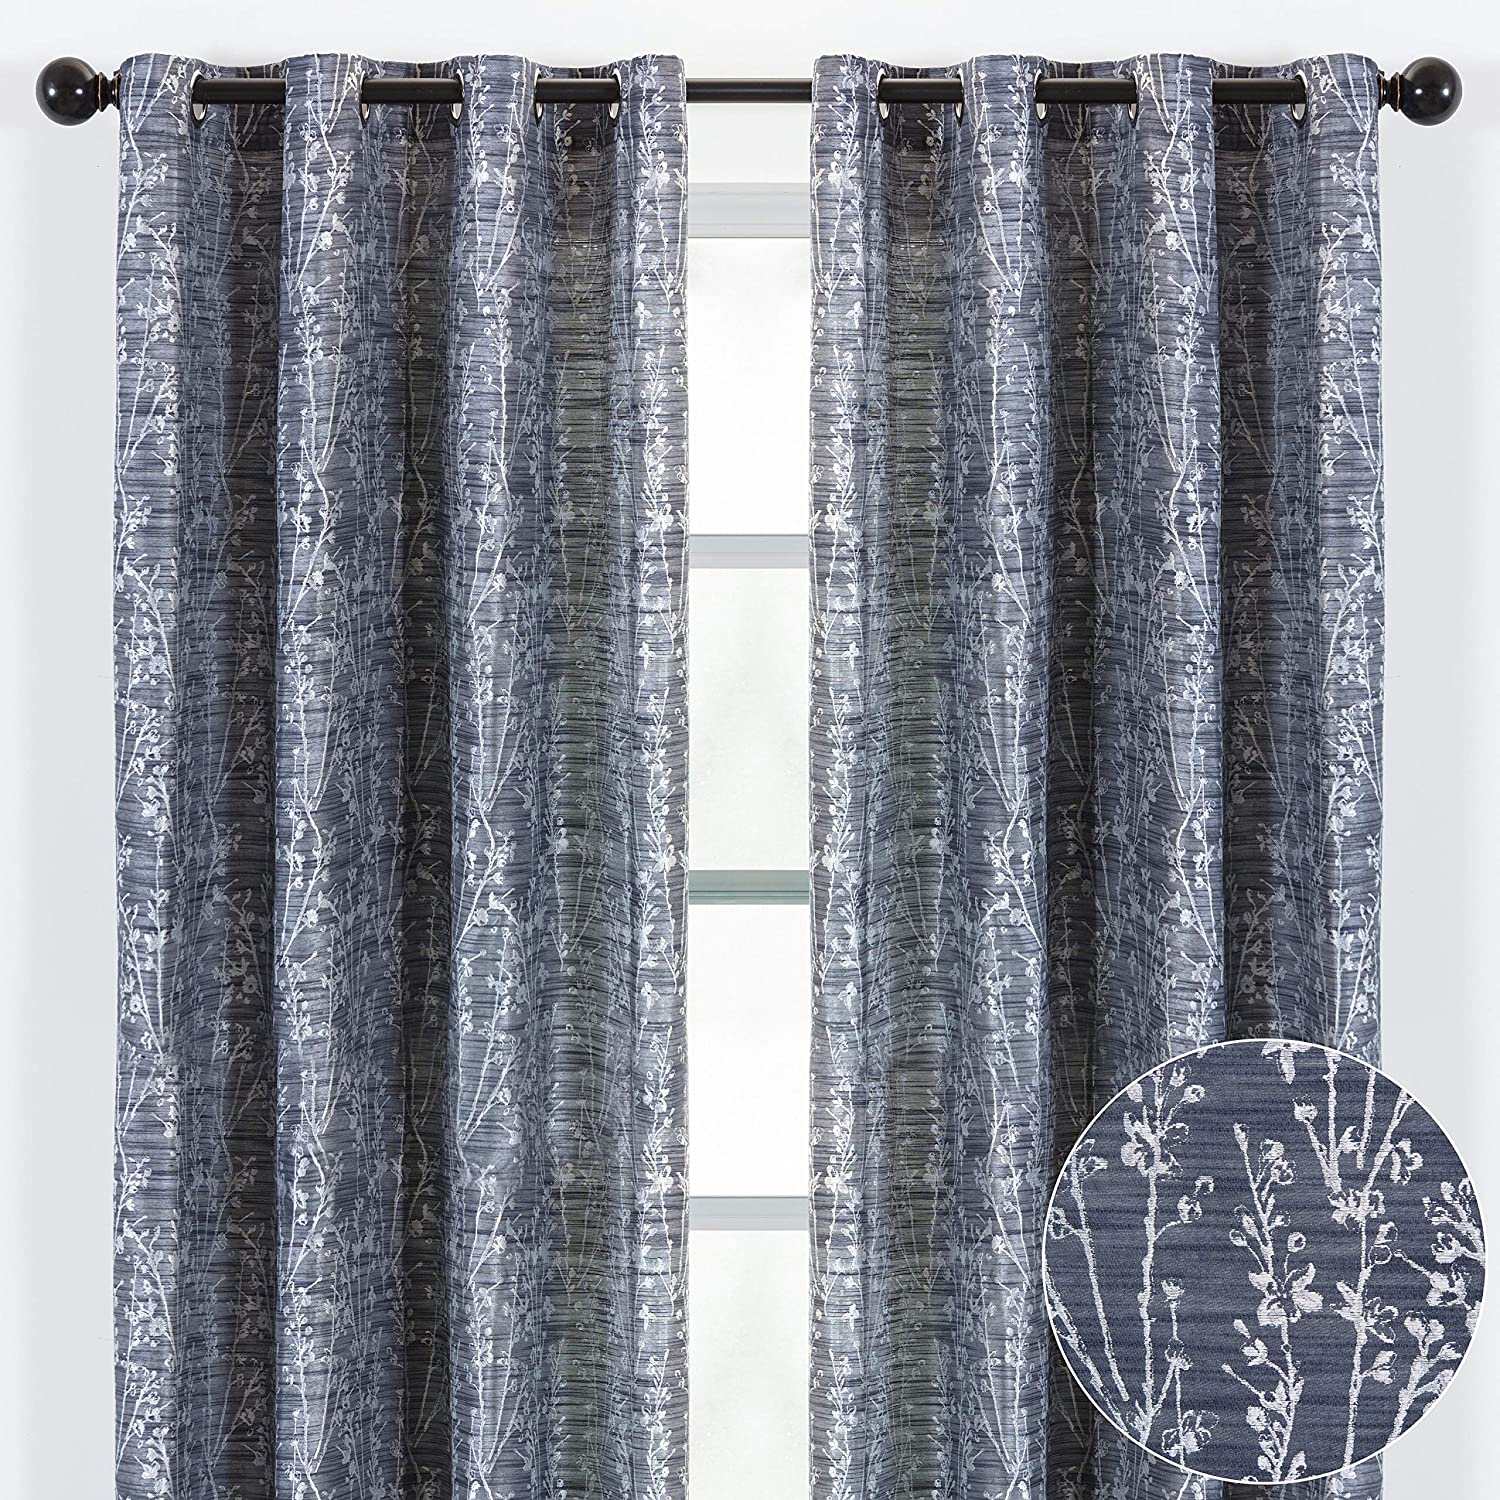 Chanasya 2-Panel Floral Jacquard Textured Dark Blue Curtains with Grommets for Windows Living Room Bedroom Office - Partial Room Darkening Drapes for Privacy and Decor - 52 x 84 Inch Long - Dark Blue